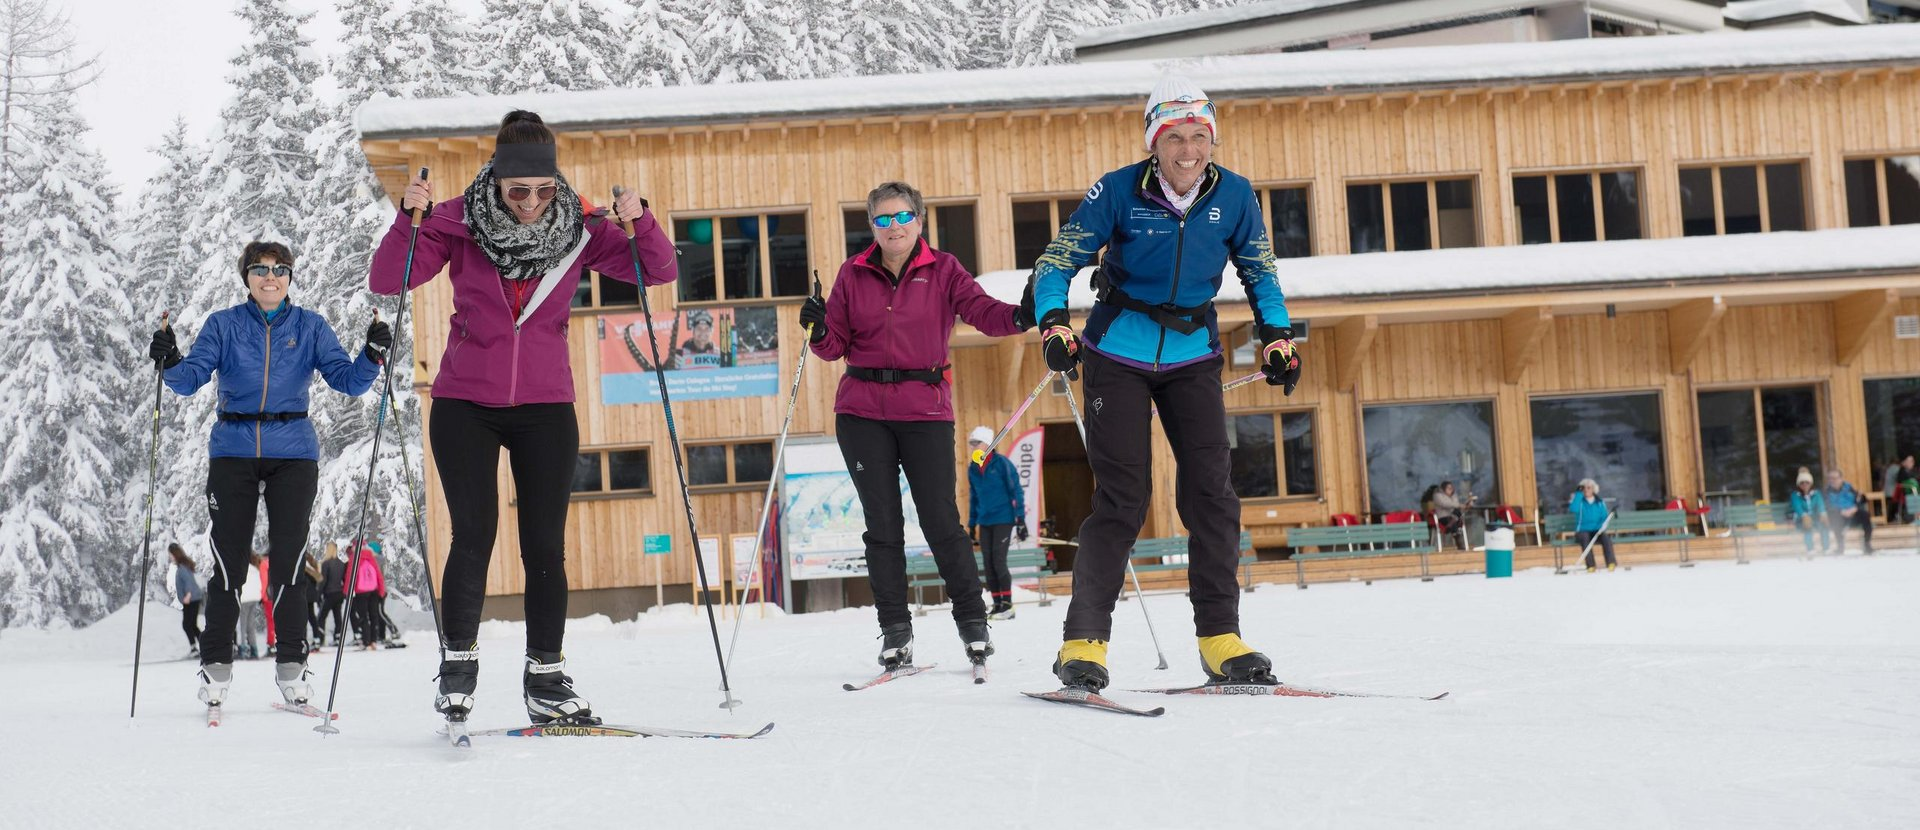 Cross-country skiing schools